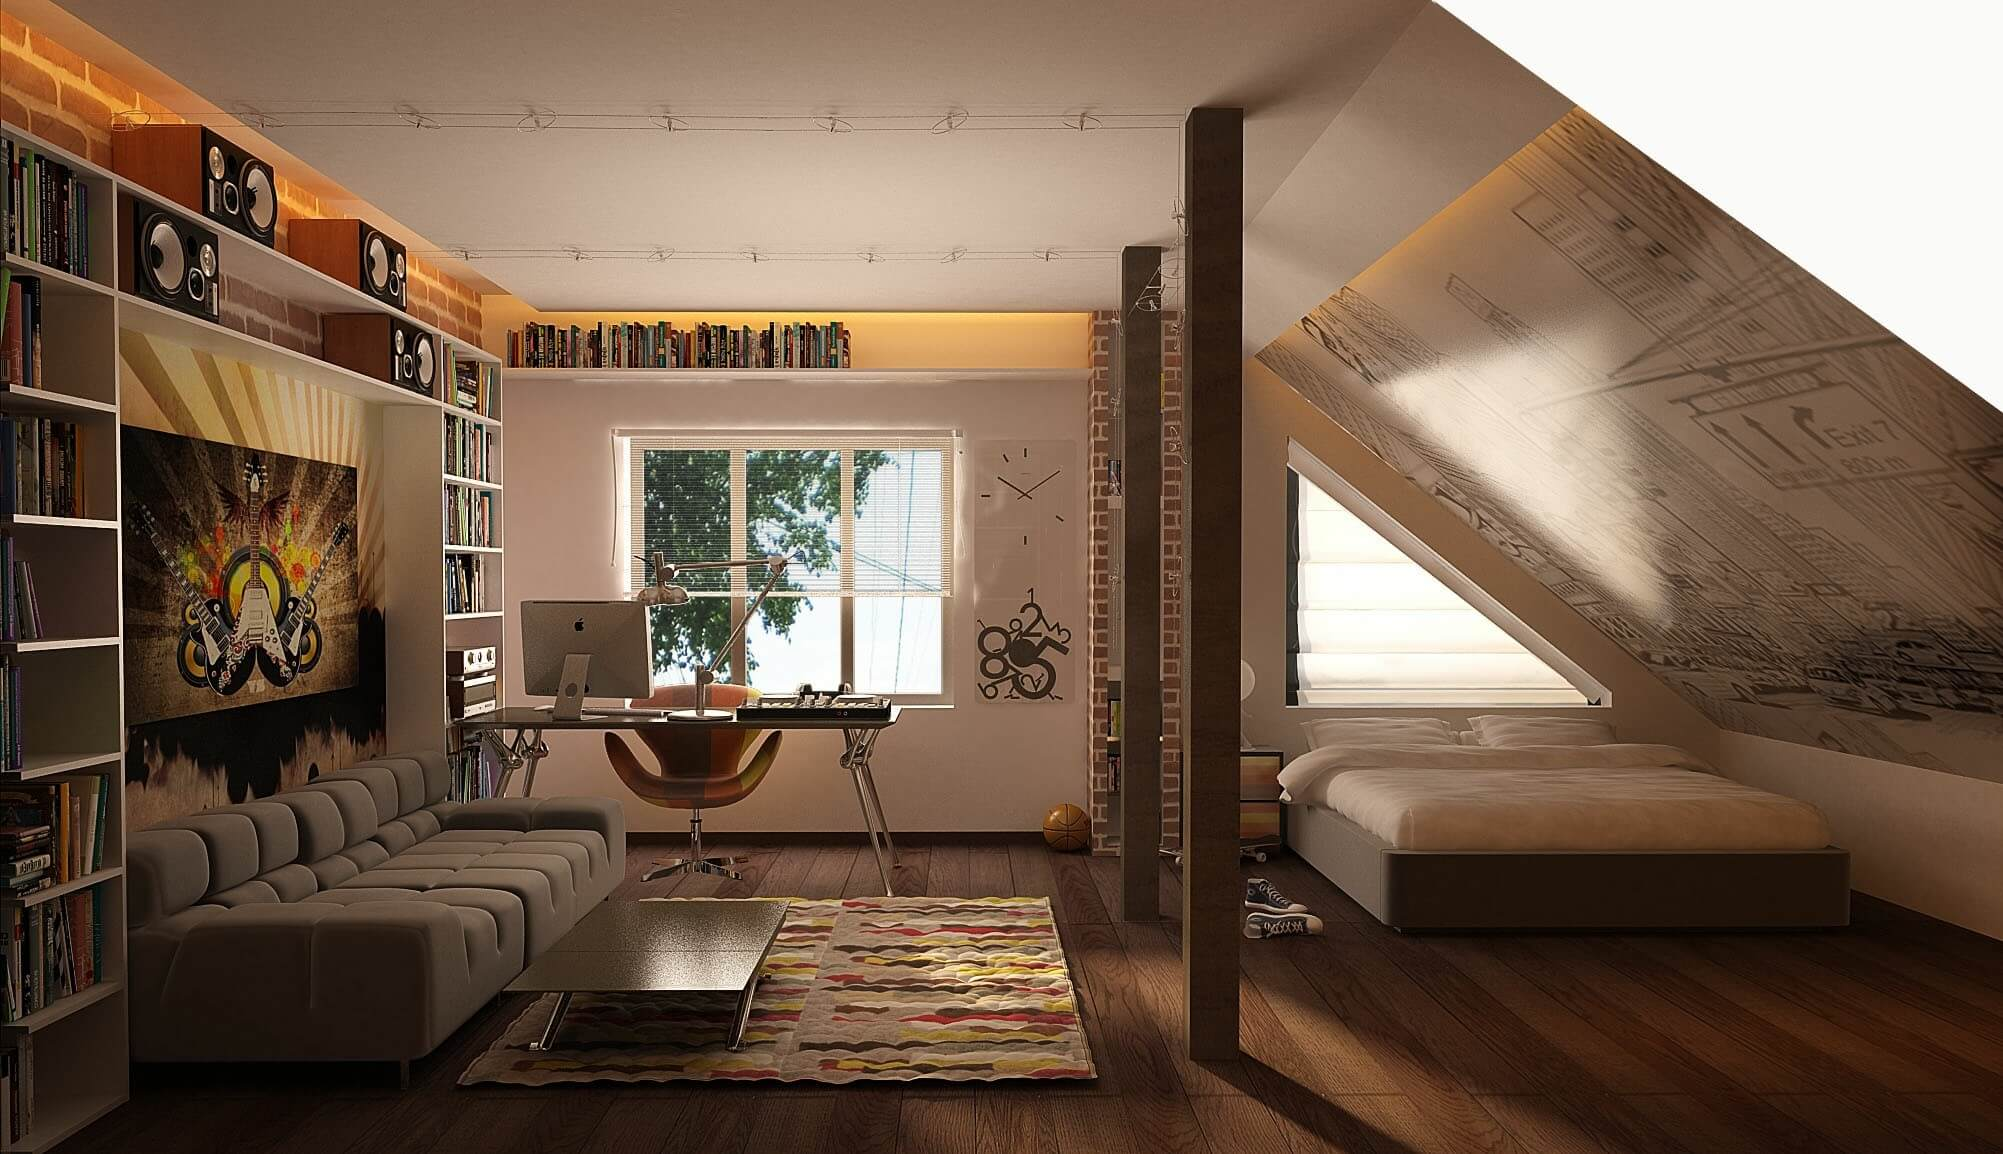 Bedrooms with Bookshelves